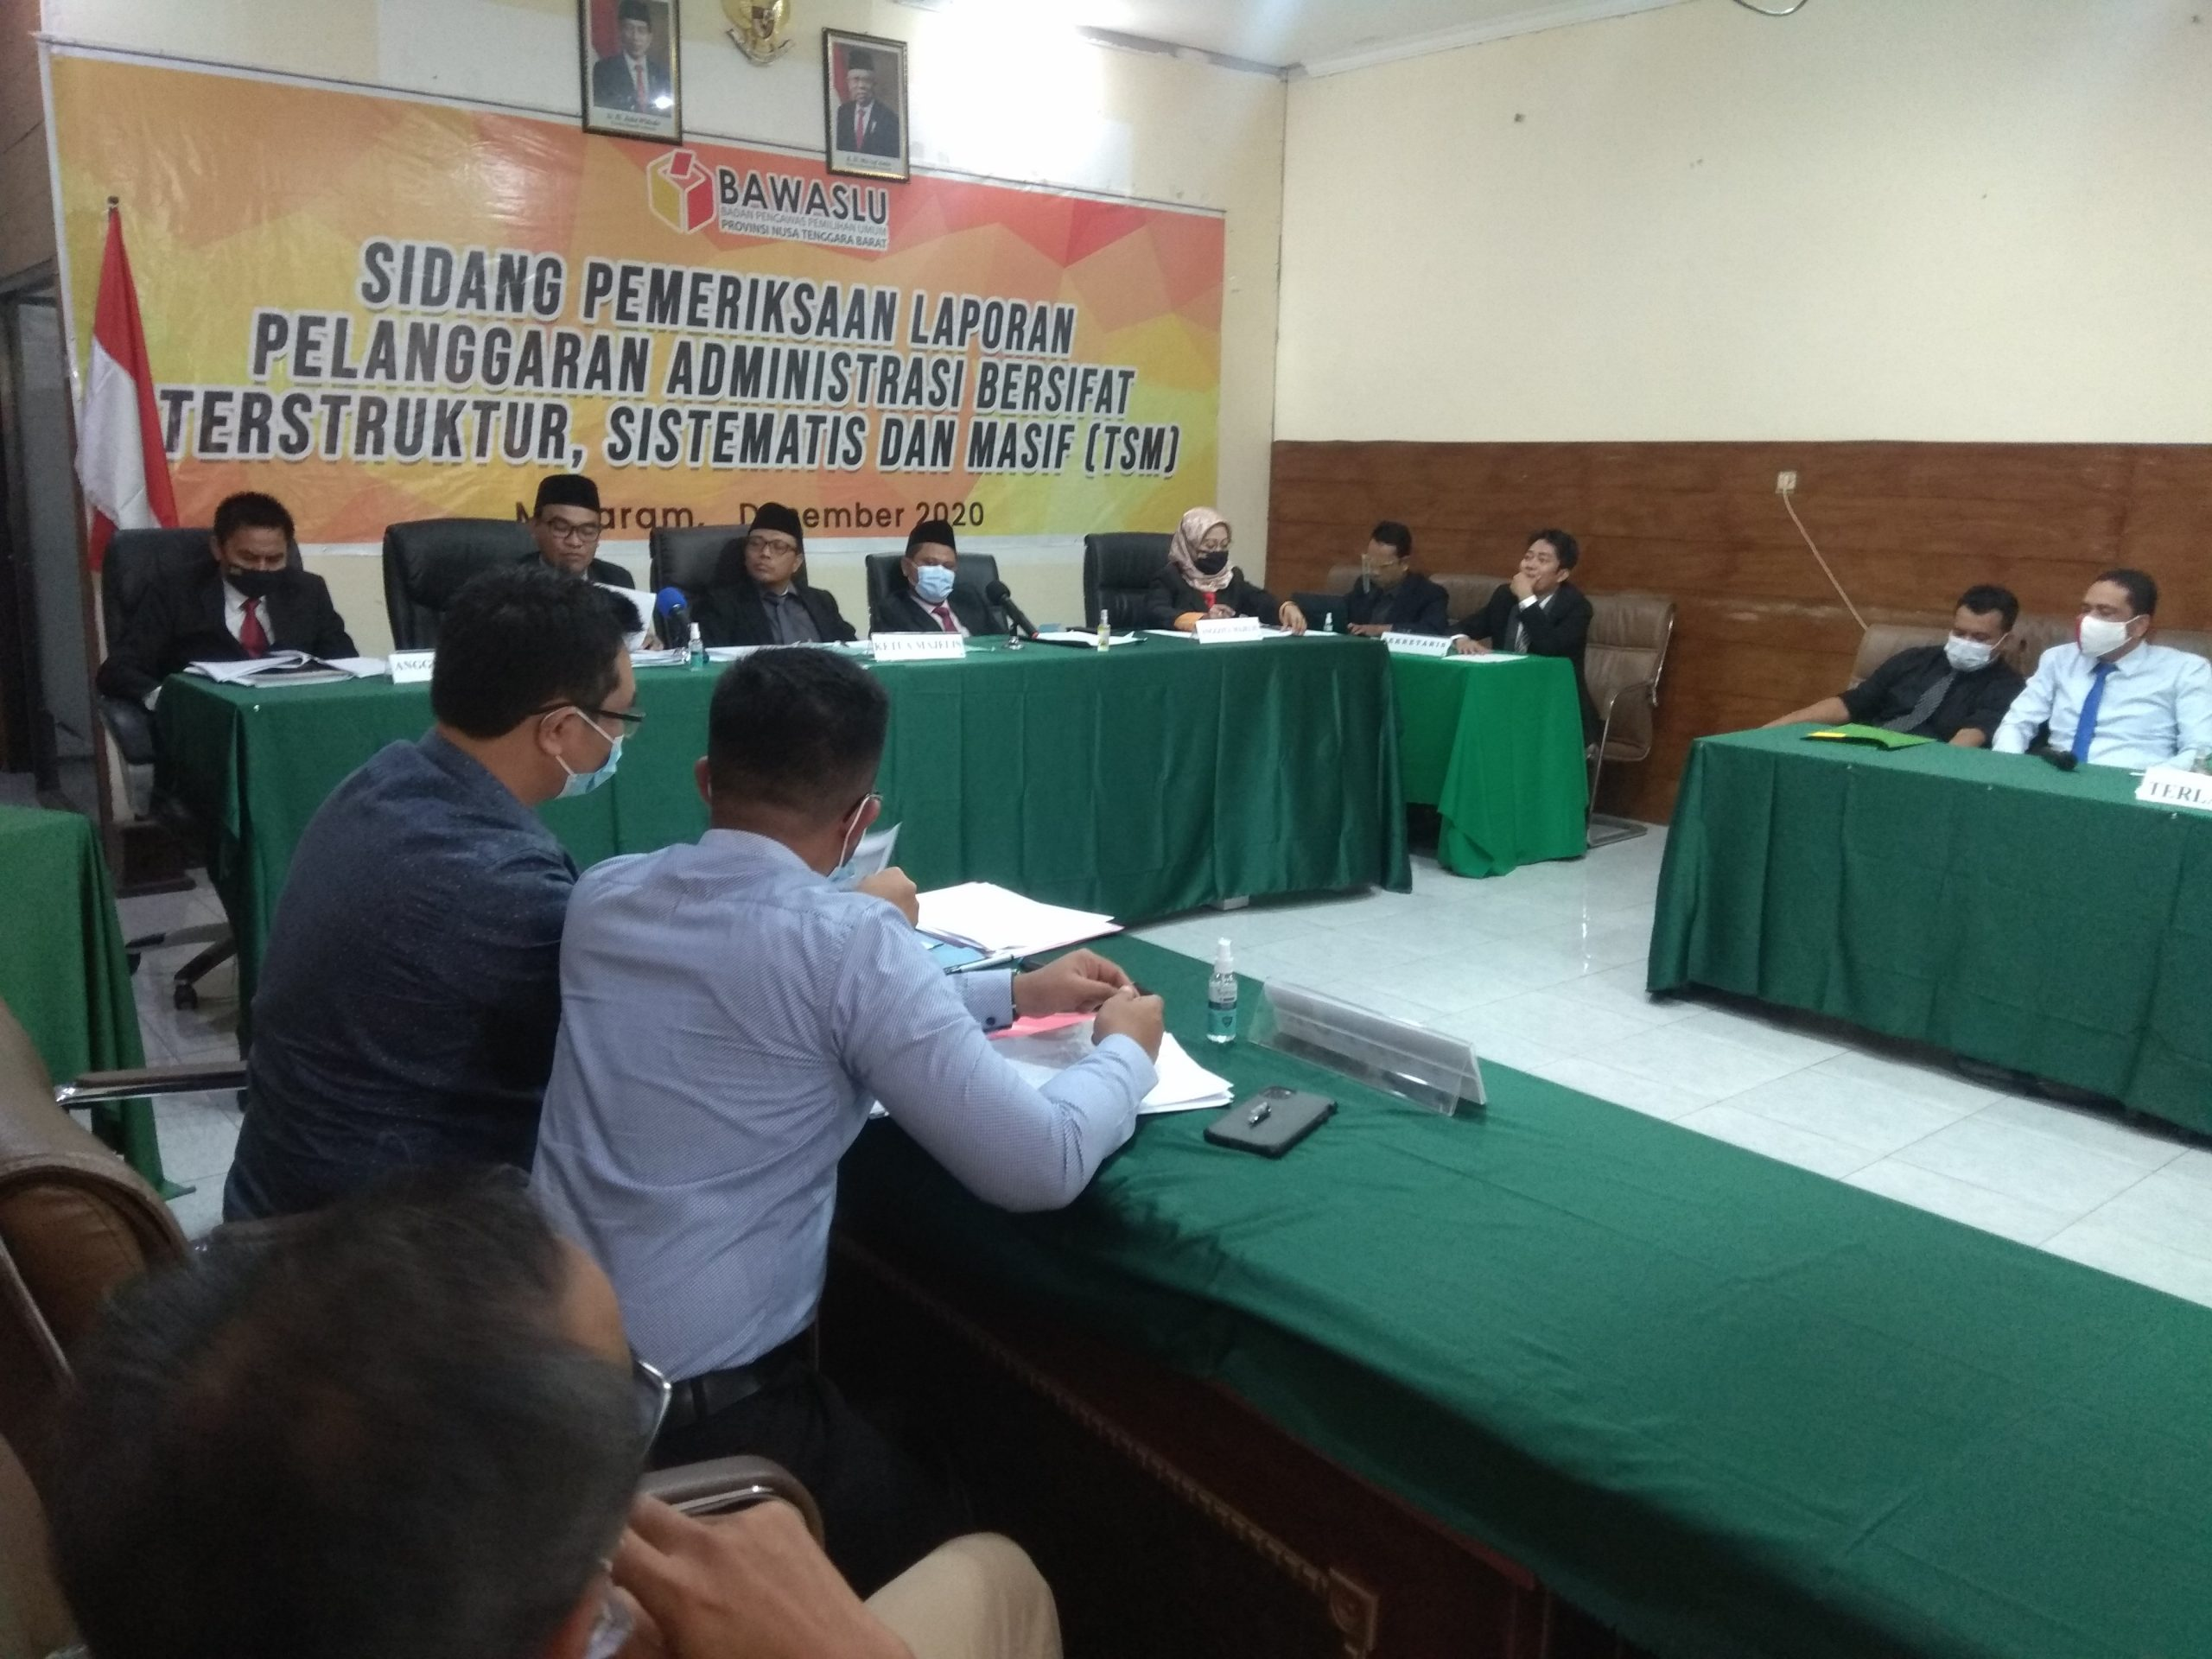 F Sidang scaled